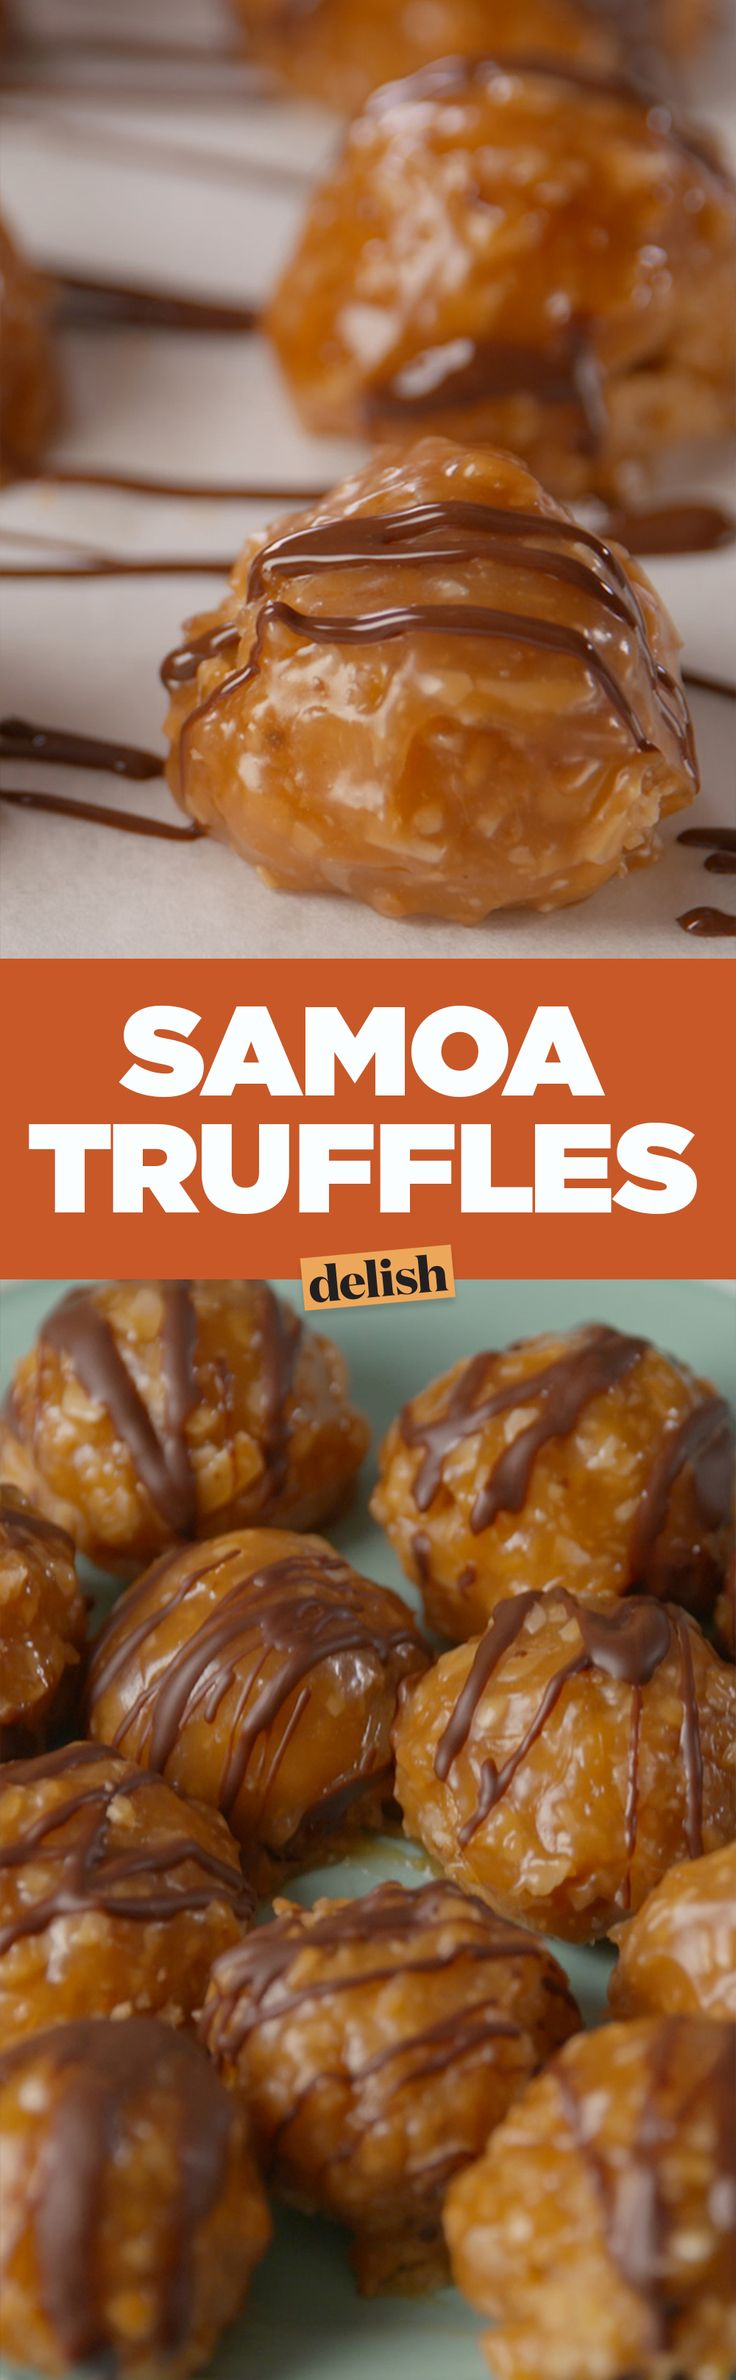 These Samoa Truffles are better than the best Girl Scout cookie. Get the recipe on Delish.com.